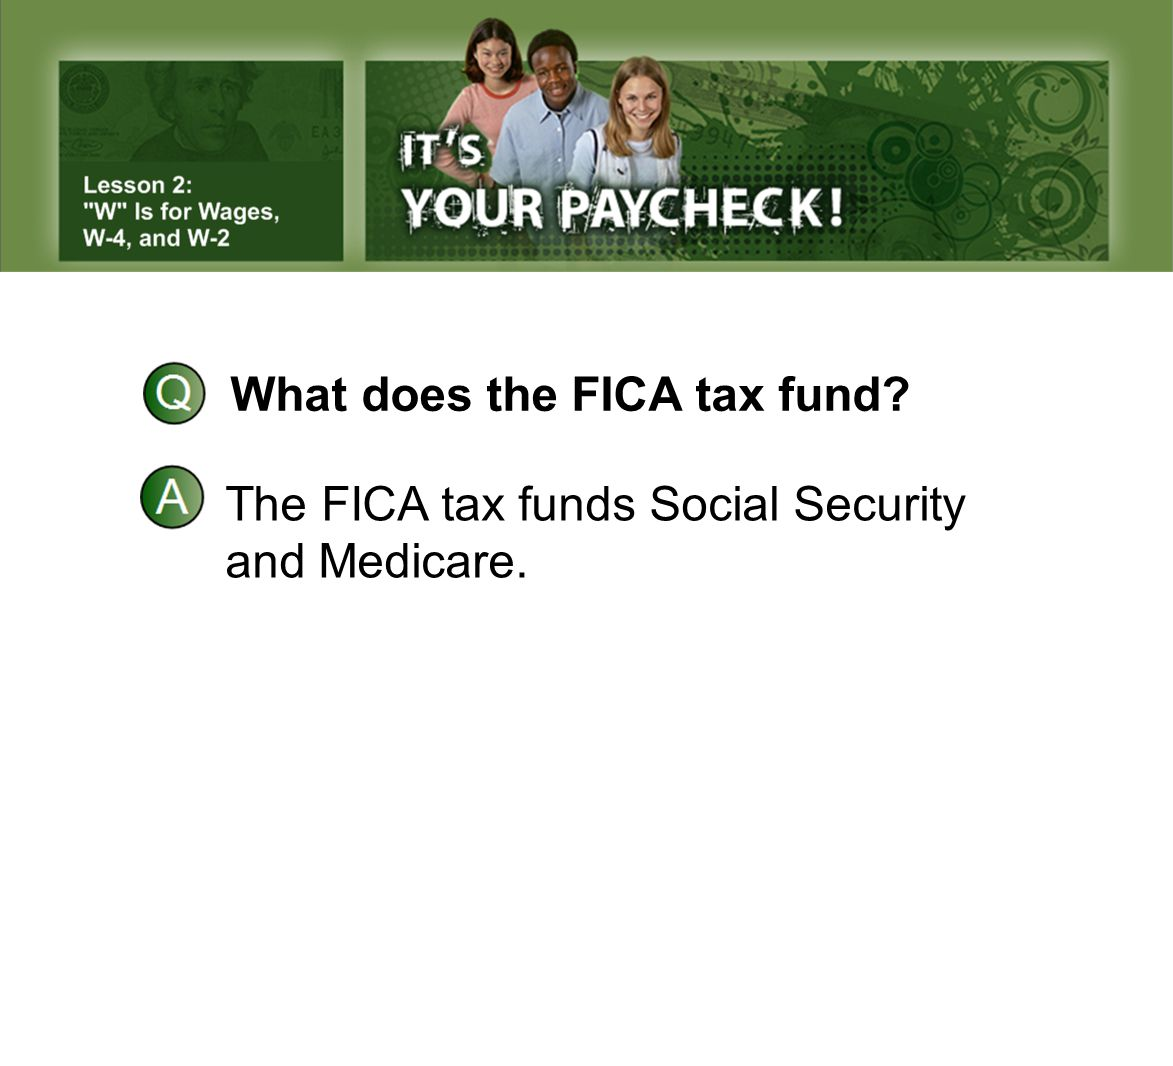 What does the FICA tax fund